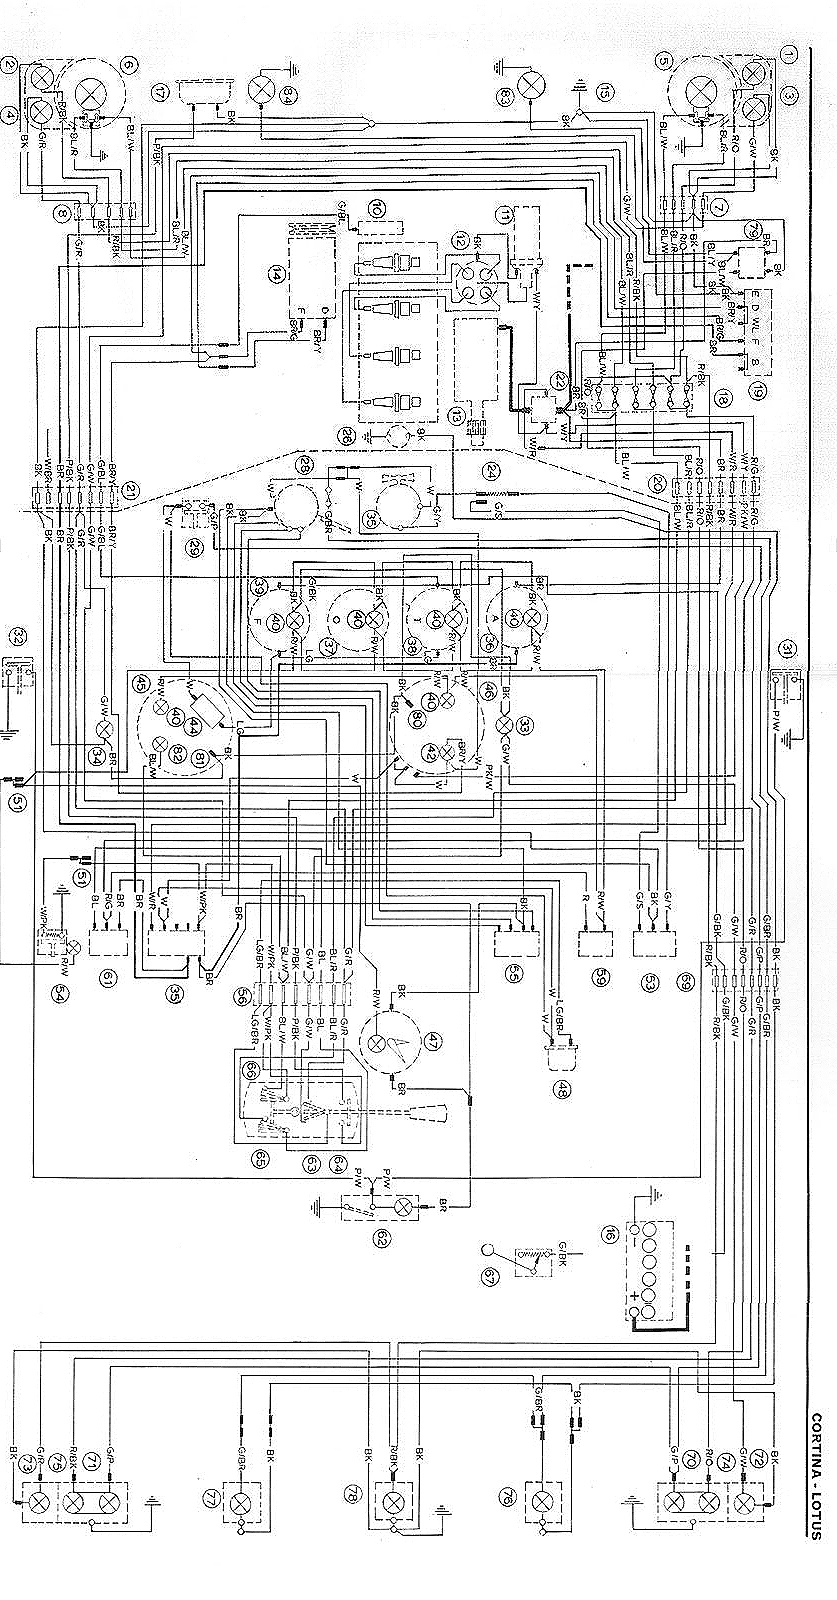 Ford Focus Wiring Diagram Pdf | Wiring Diagram - Mondeo Trailer Wiring Diagram